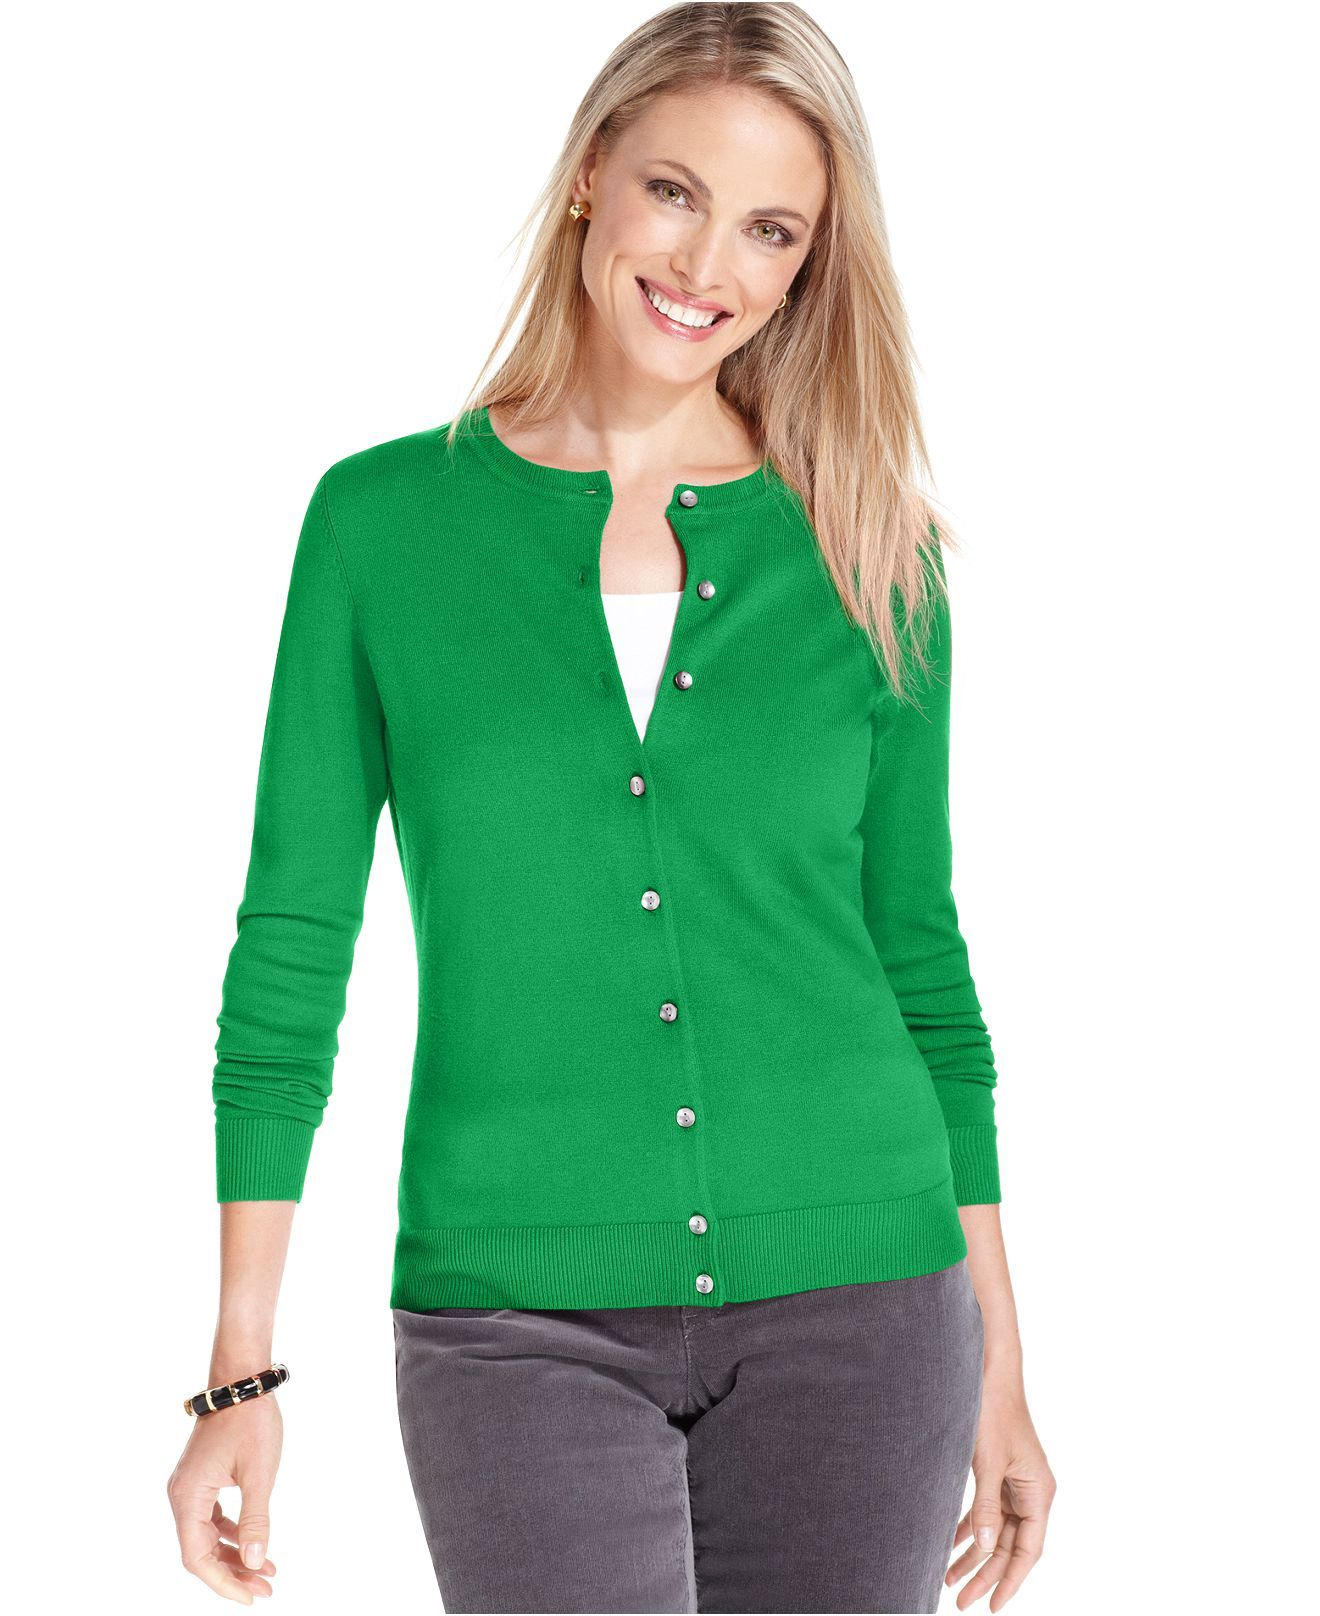 Kelly Green Cardigan | Work Casual | Pinterest | Kelly green and ...